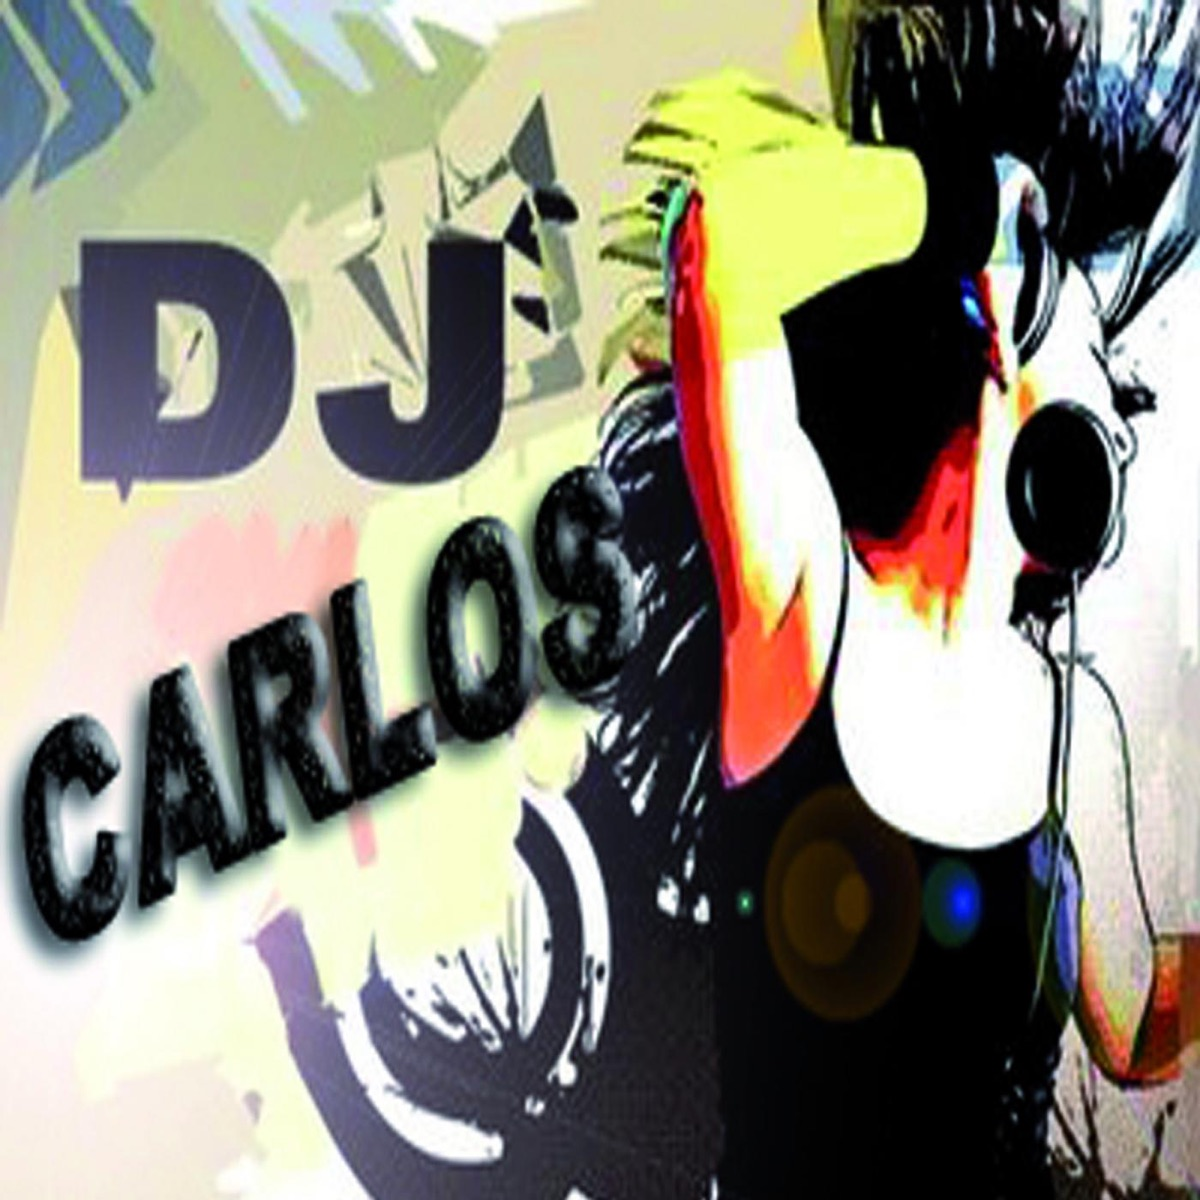 SUMMER PARTY 2020 By Dj Carlos